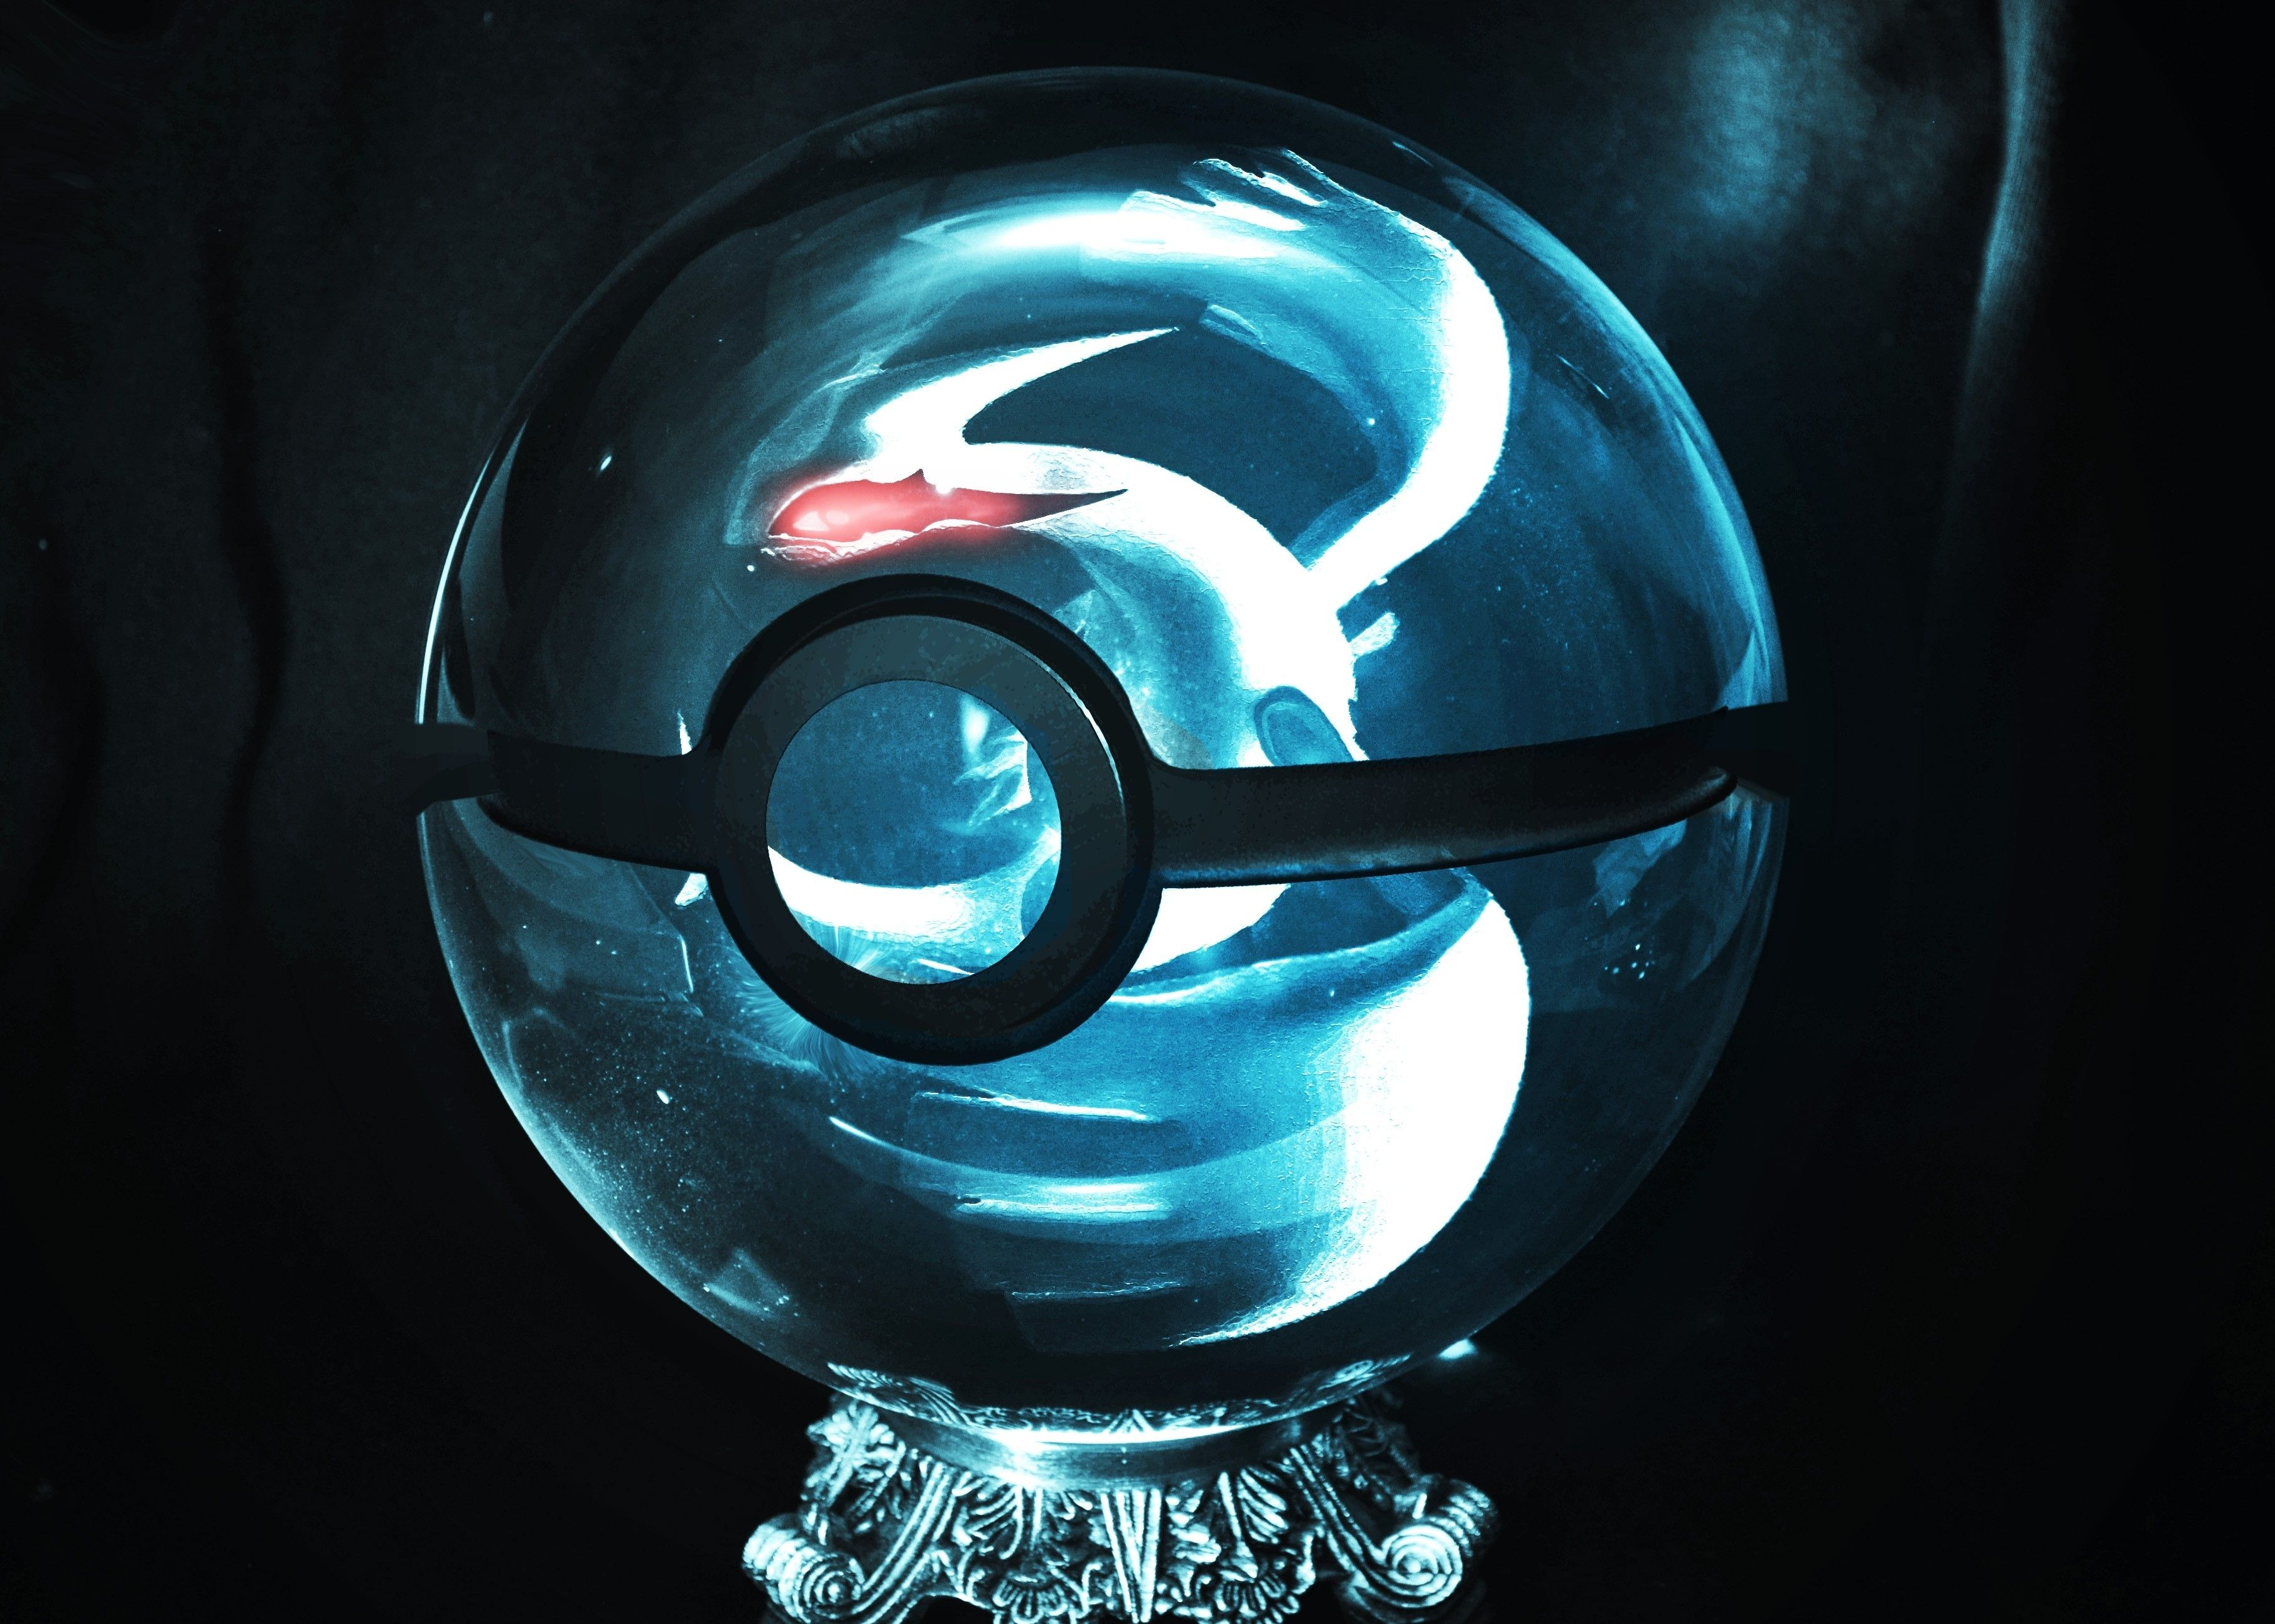 pokeball wallpaper pinterest - photo #35